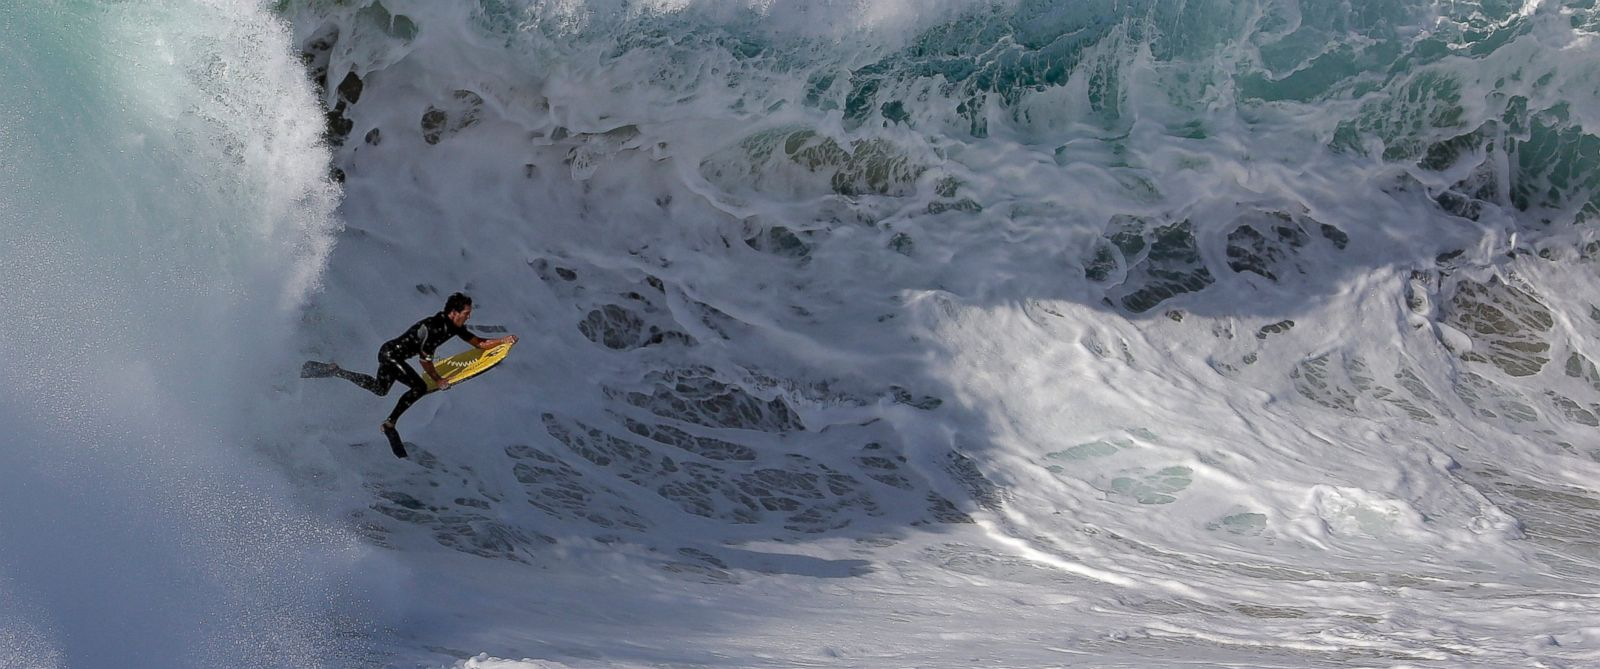 PHOTO: A bogieboarder rides a wave at the wedge in Newport Beach, Calif., Aug. 27, 2014.